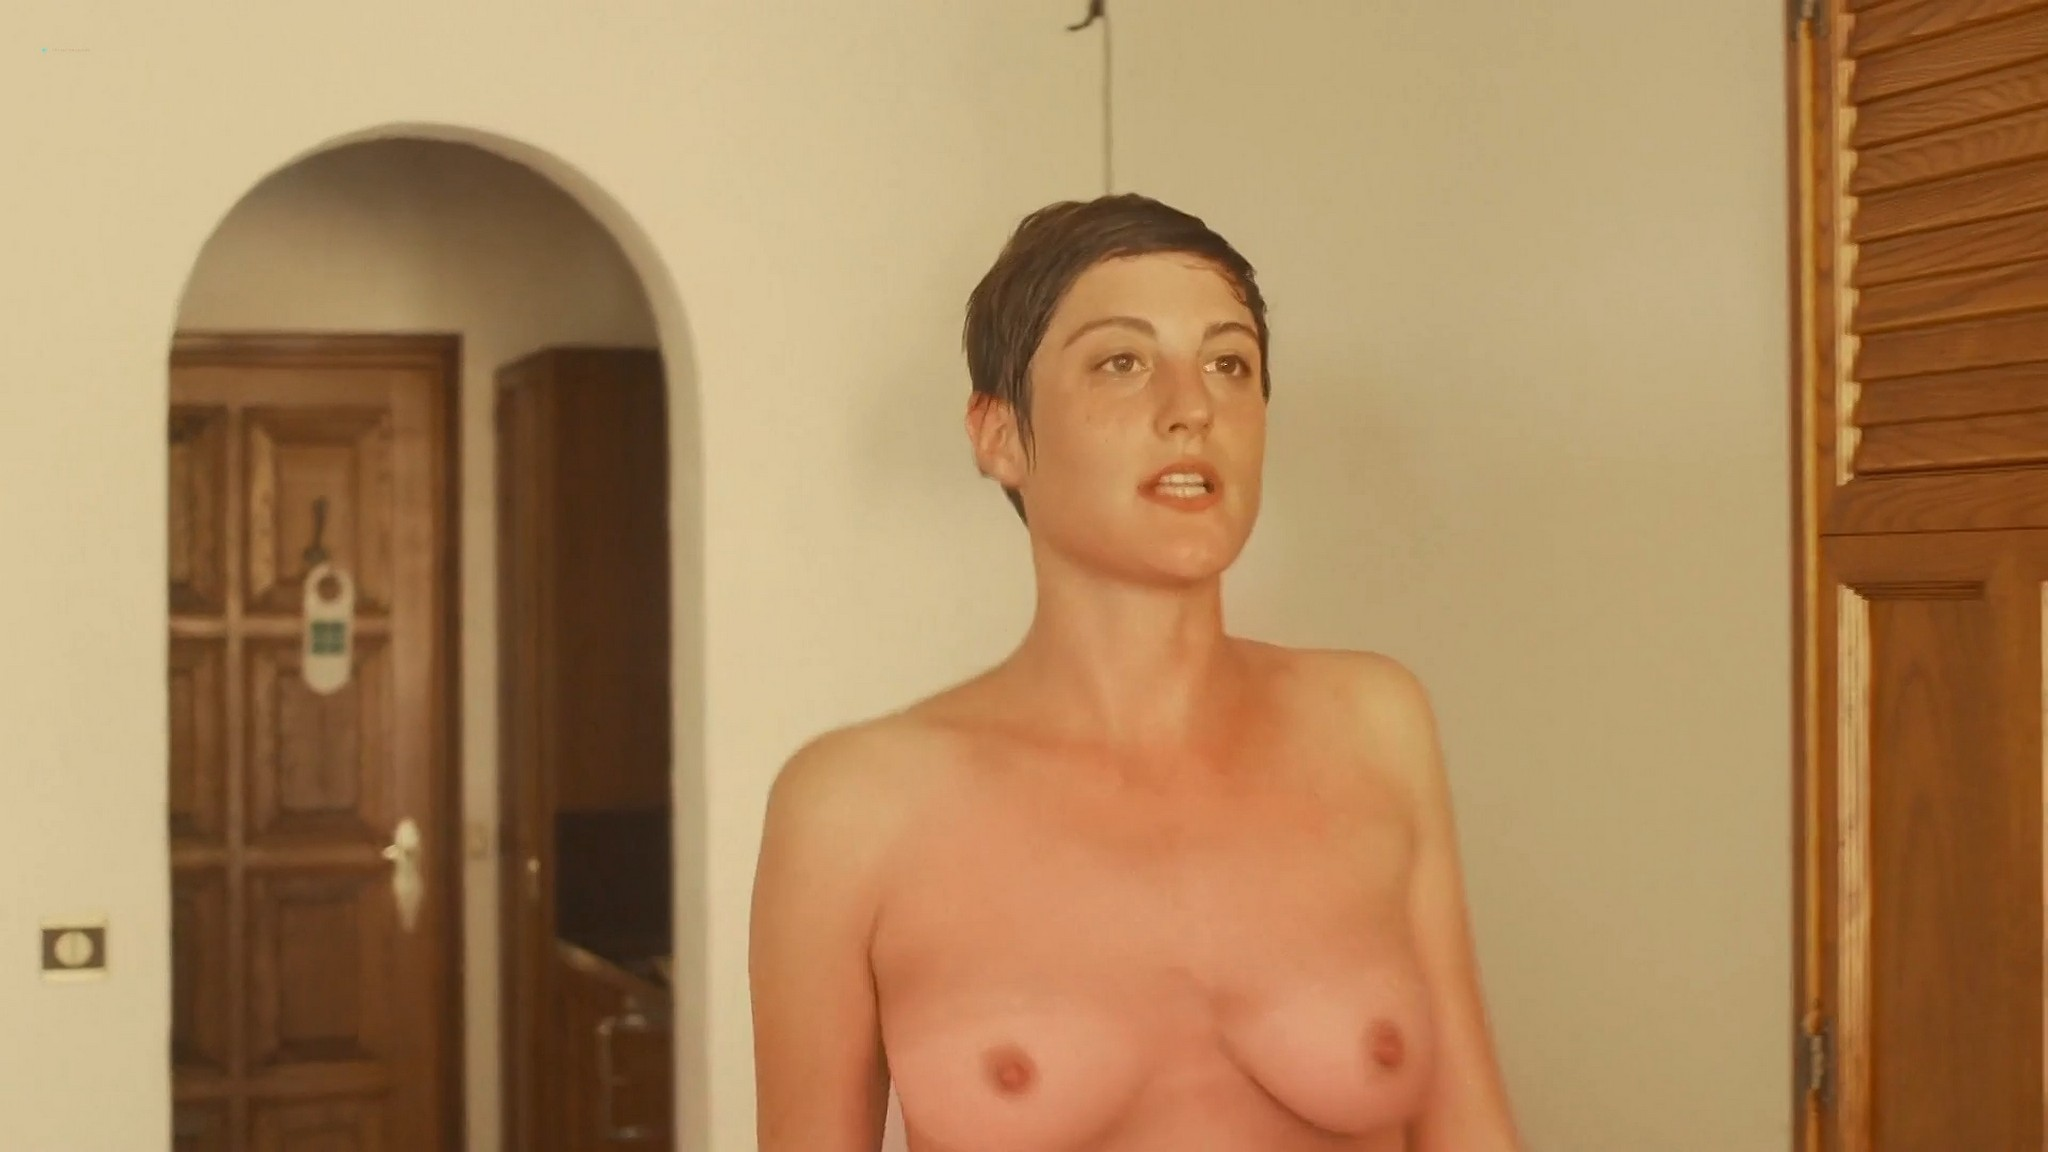 Carole Le Page nude full frontal Sophie Letourneur Lolita Chammah nude too Les coquillettes FR 2012 1080p Web 12